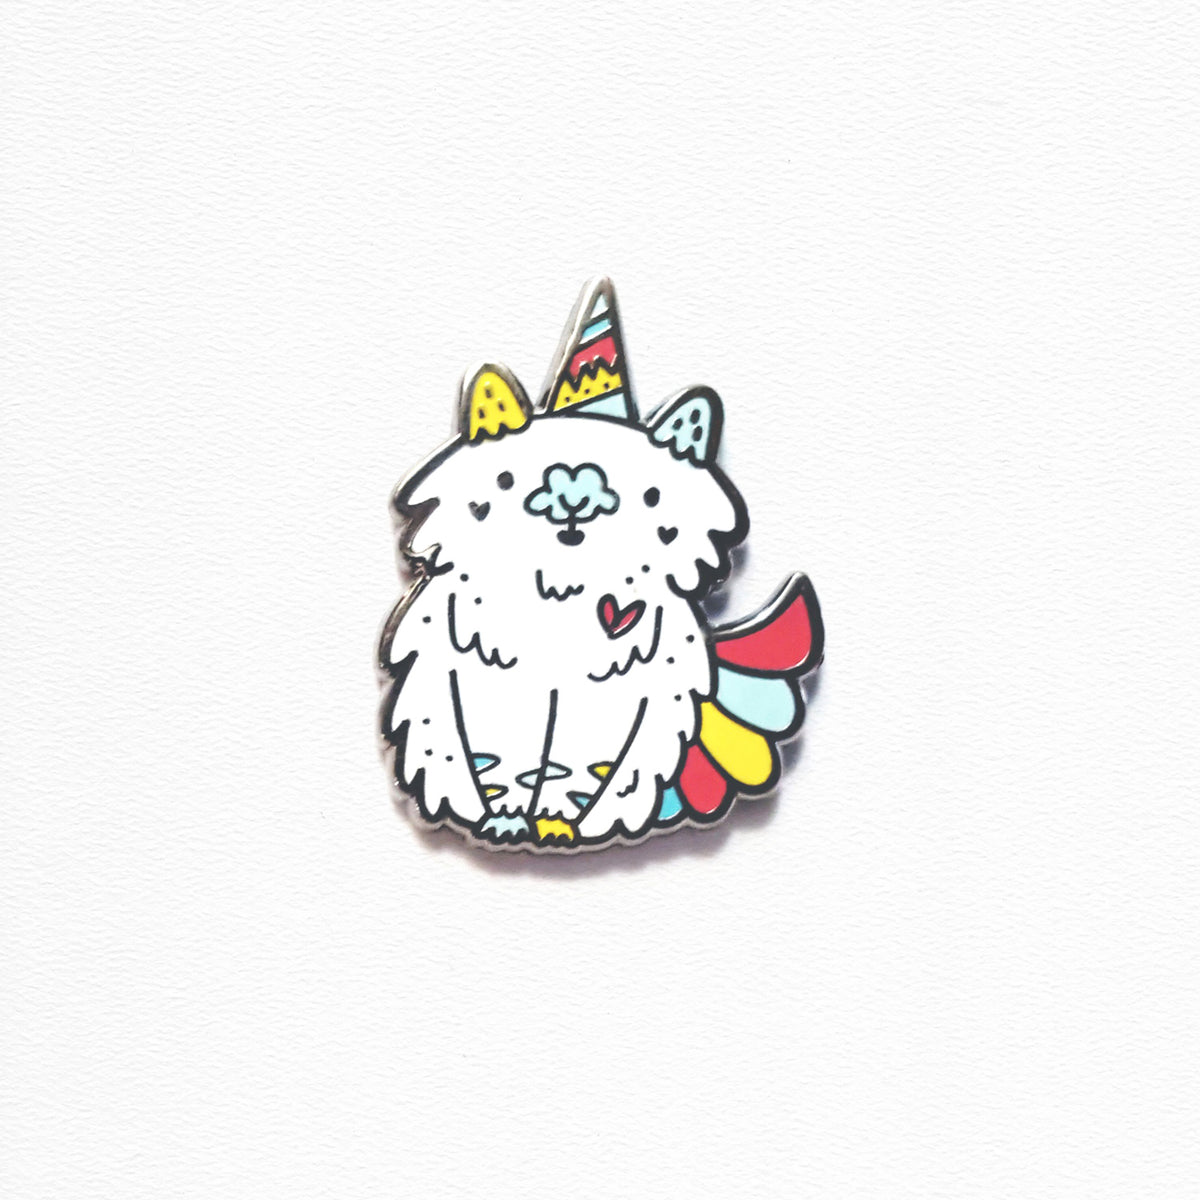 Hubicorn ~ Fluffy unicorn part cat enamel pin by Vancouver designer, My Cat Is People